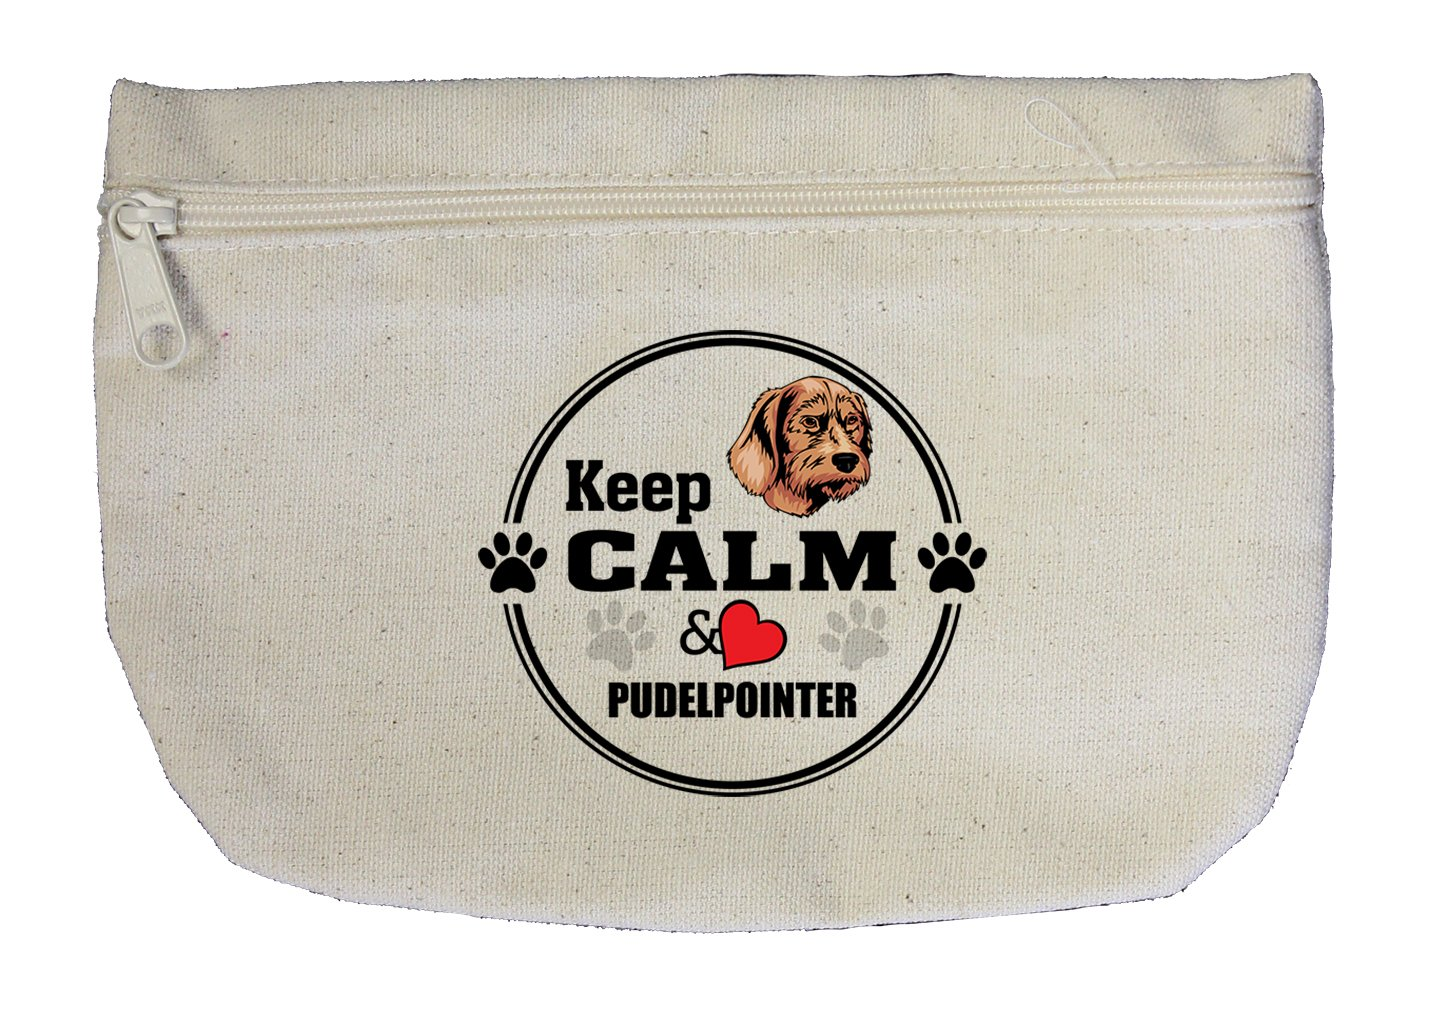 Canvas Zipper Pouch Makeup Bag Keep Calm Love Pudelpointer Dog Style In Print